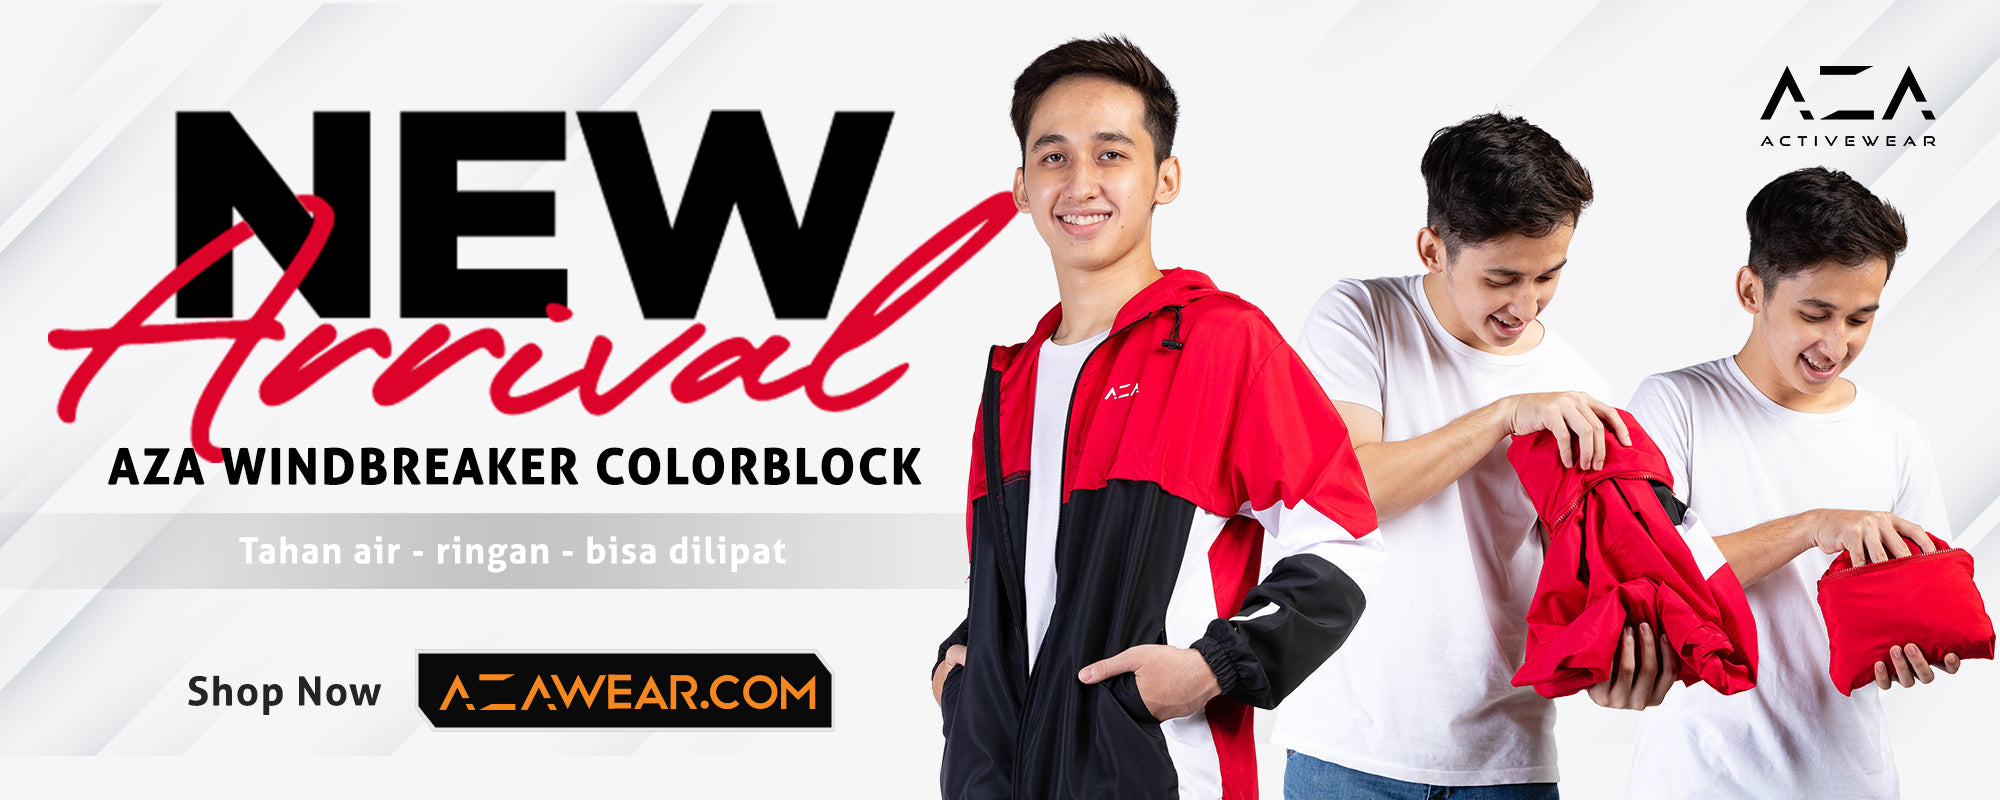 files/New_Arrival_WindbreakerColorblock_2000x800_copy.jpg